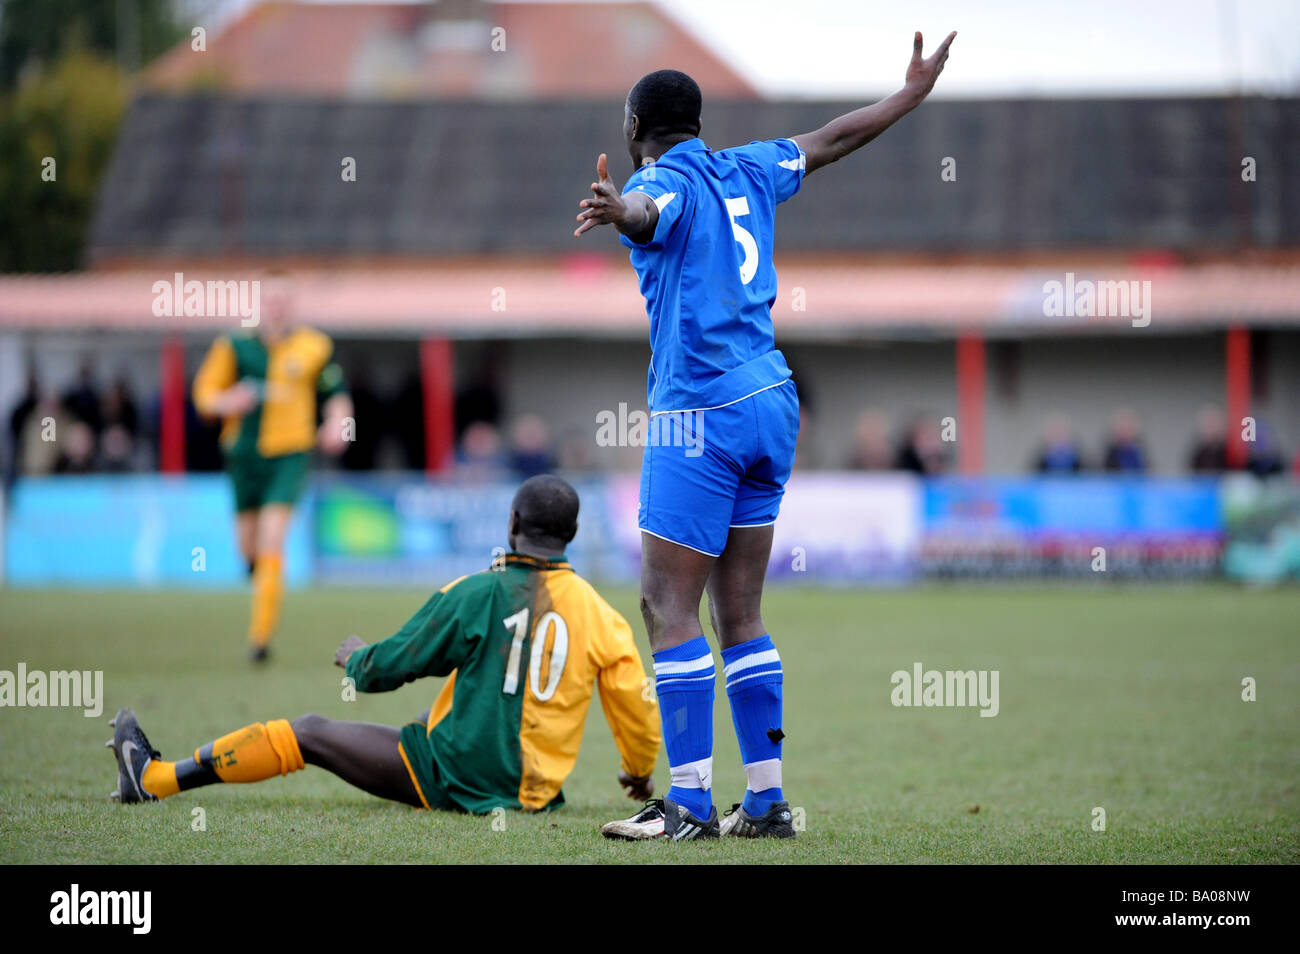 A footballer protests his innocence after another player is left on the ground after a tackle - Stock Image